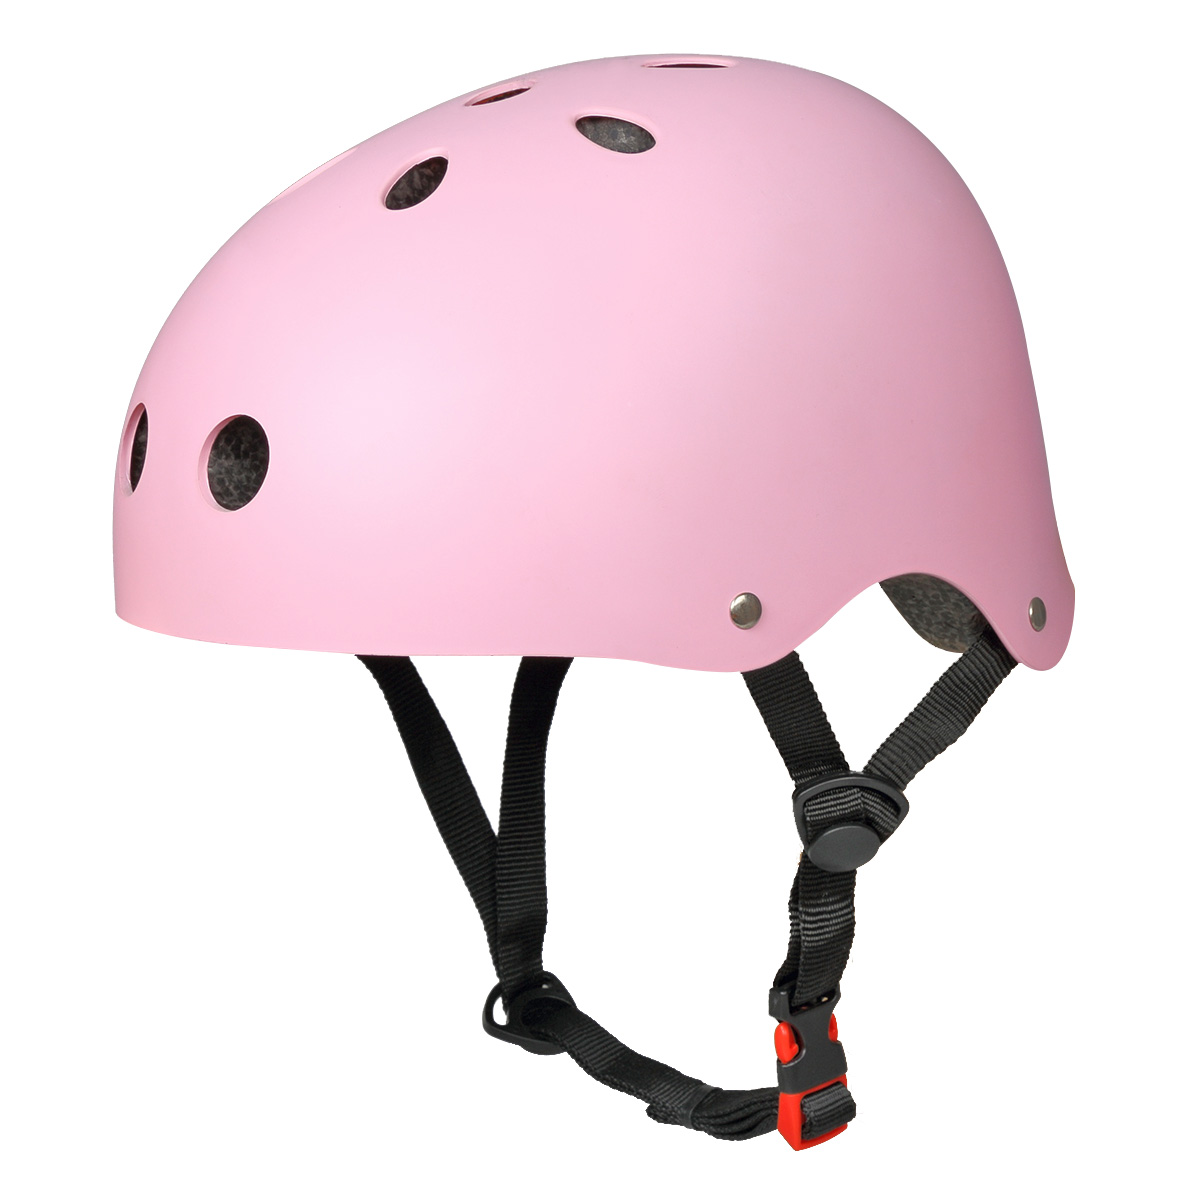 CoastaCloud Skate BMX Scooter Bicycle Helmet,with Sweatsaver liner,with Adjustable Straps for Cycling,Outdoors sports,Skating,Scooter